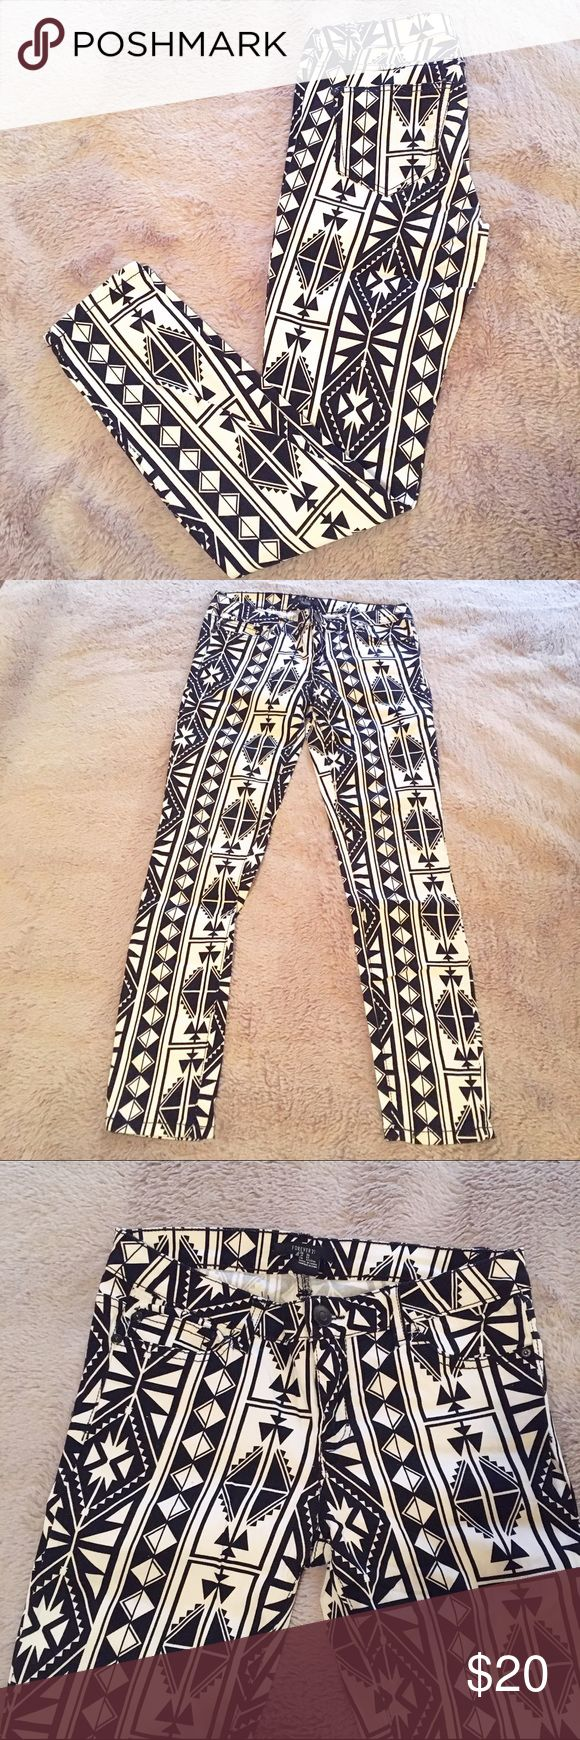 Black and White Aztec Print Skinny Jean - 27 Like New! Only worn once! These jeans have an all over white/black Aztec print and are a super soft /stretchy denim material. Excellent Condition. Size 27. Forever 21 Pants Skinny